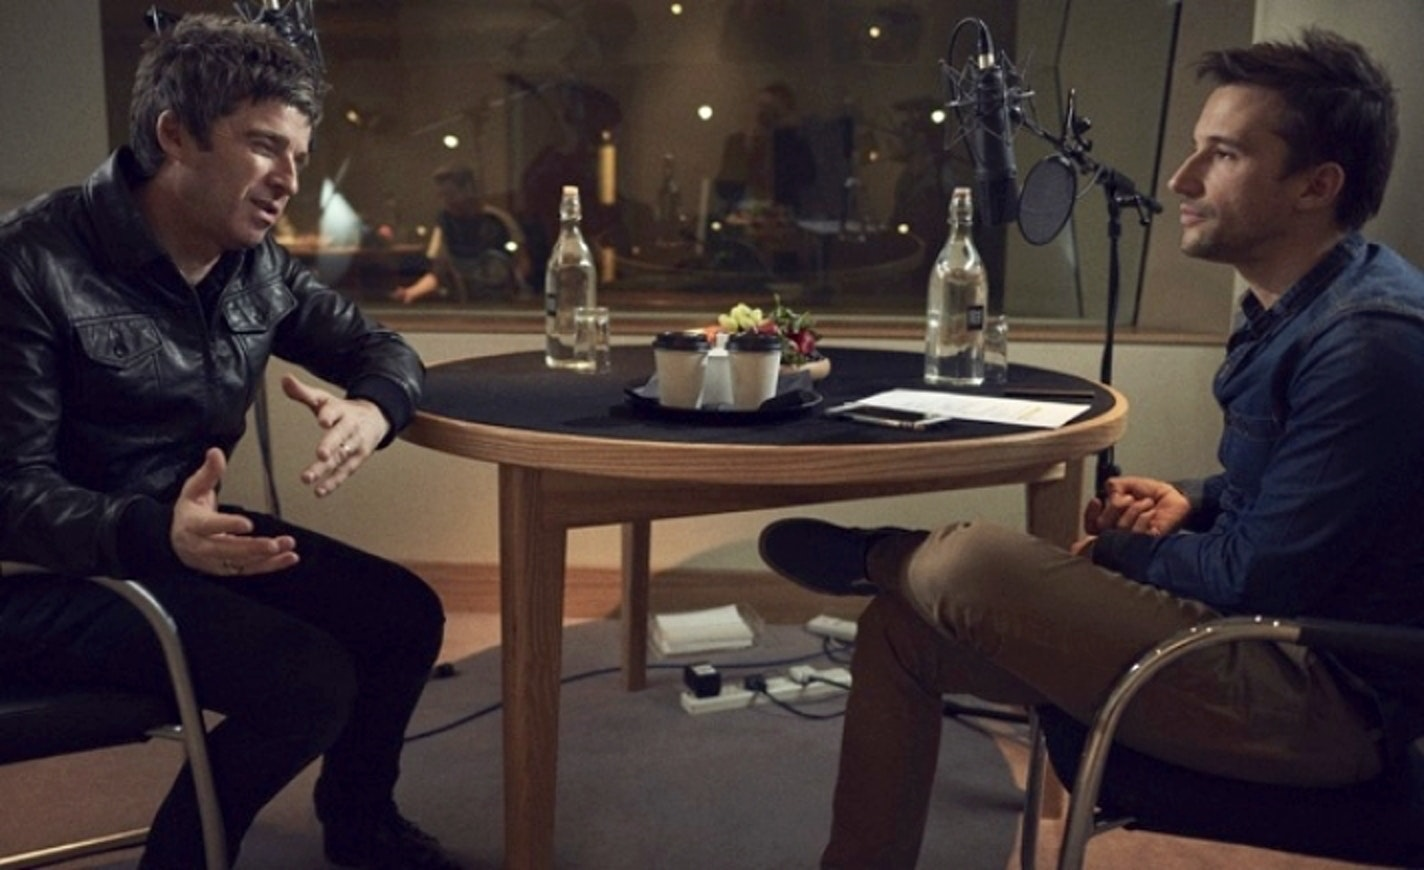 Noel Gallagher records the audio interview for 'Supersonic' with Mat Whitecross